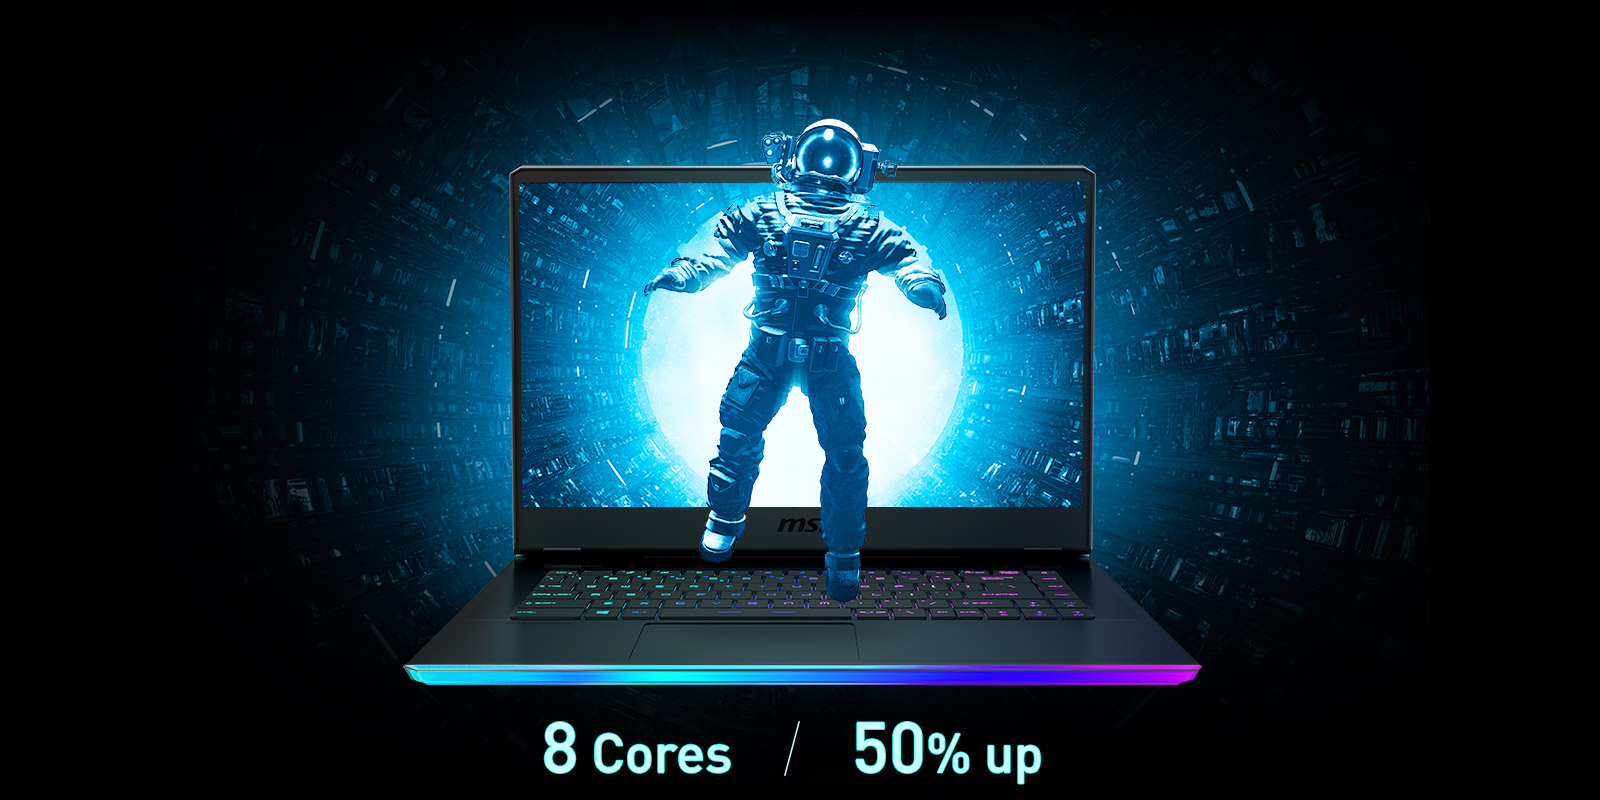 An astronaut is coming out from laptop screen. Text below says: 8 Cores / 50% Up